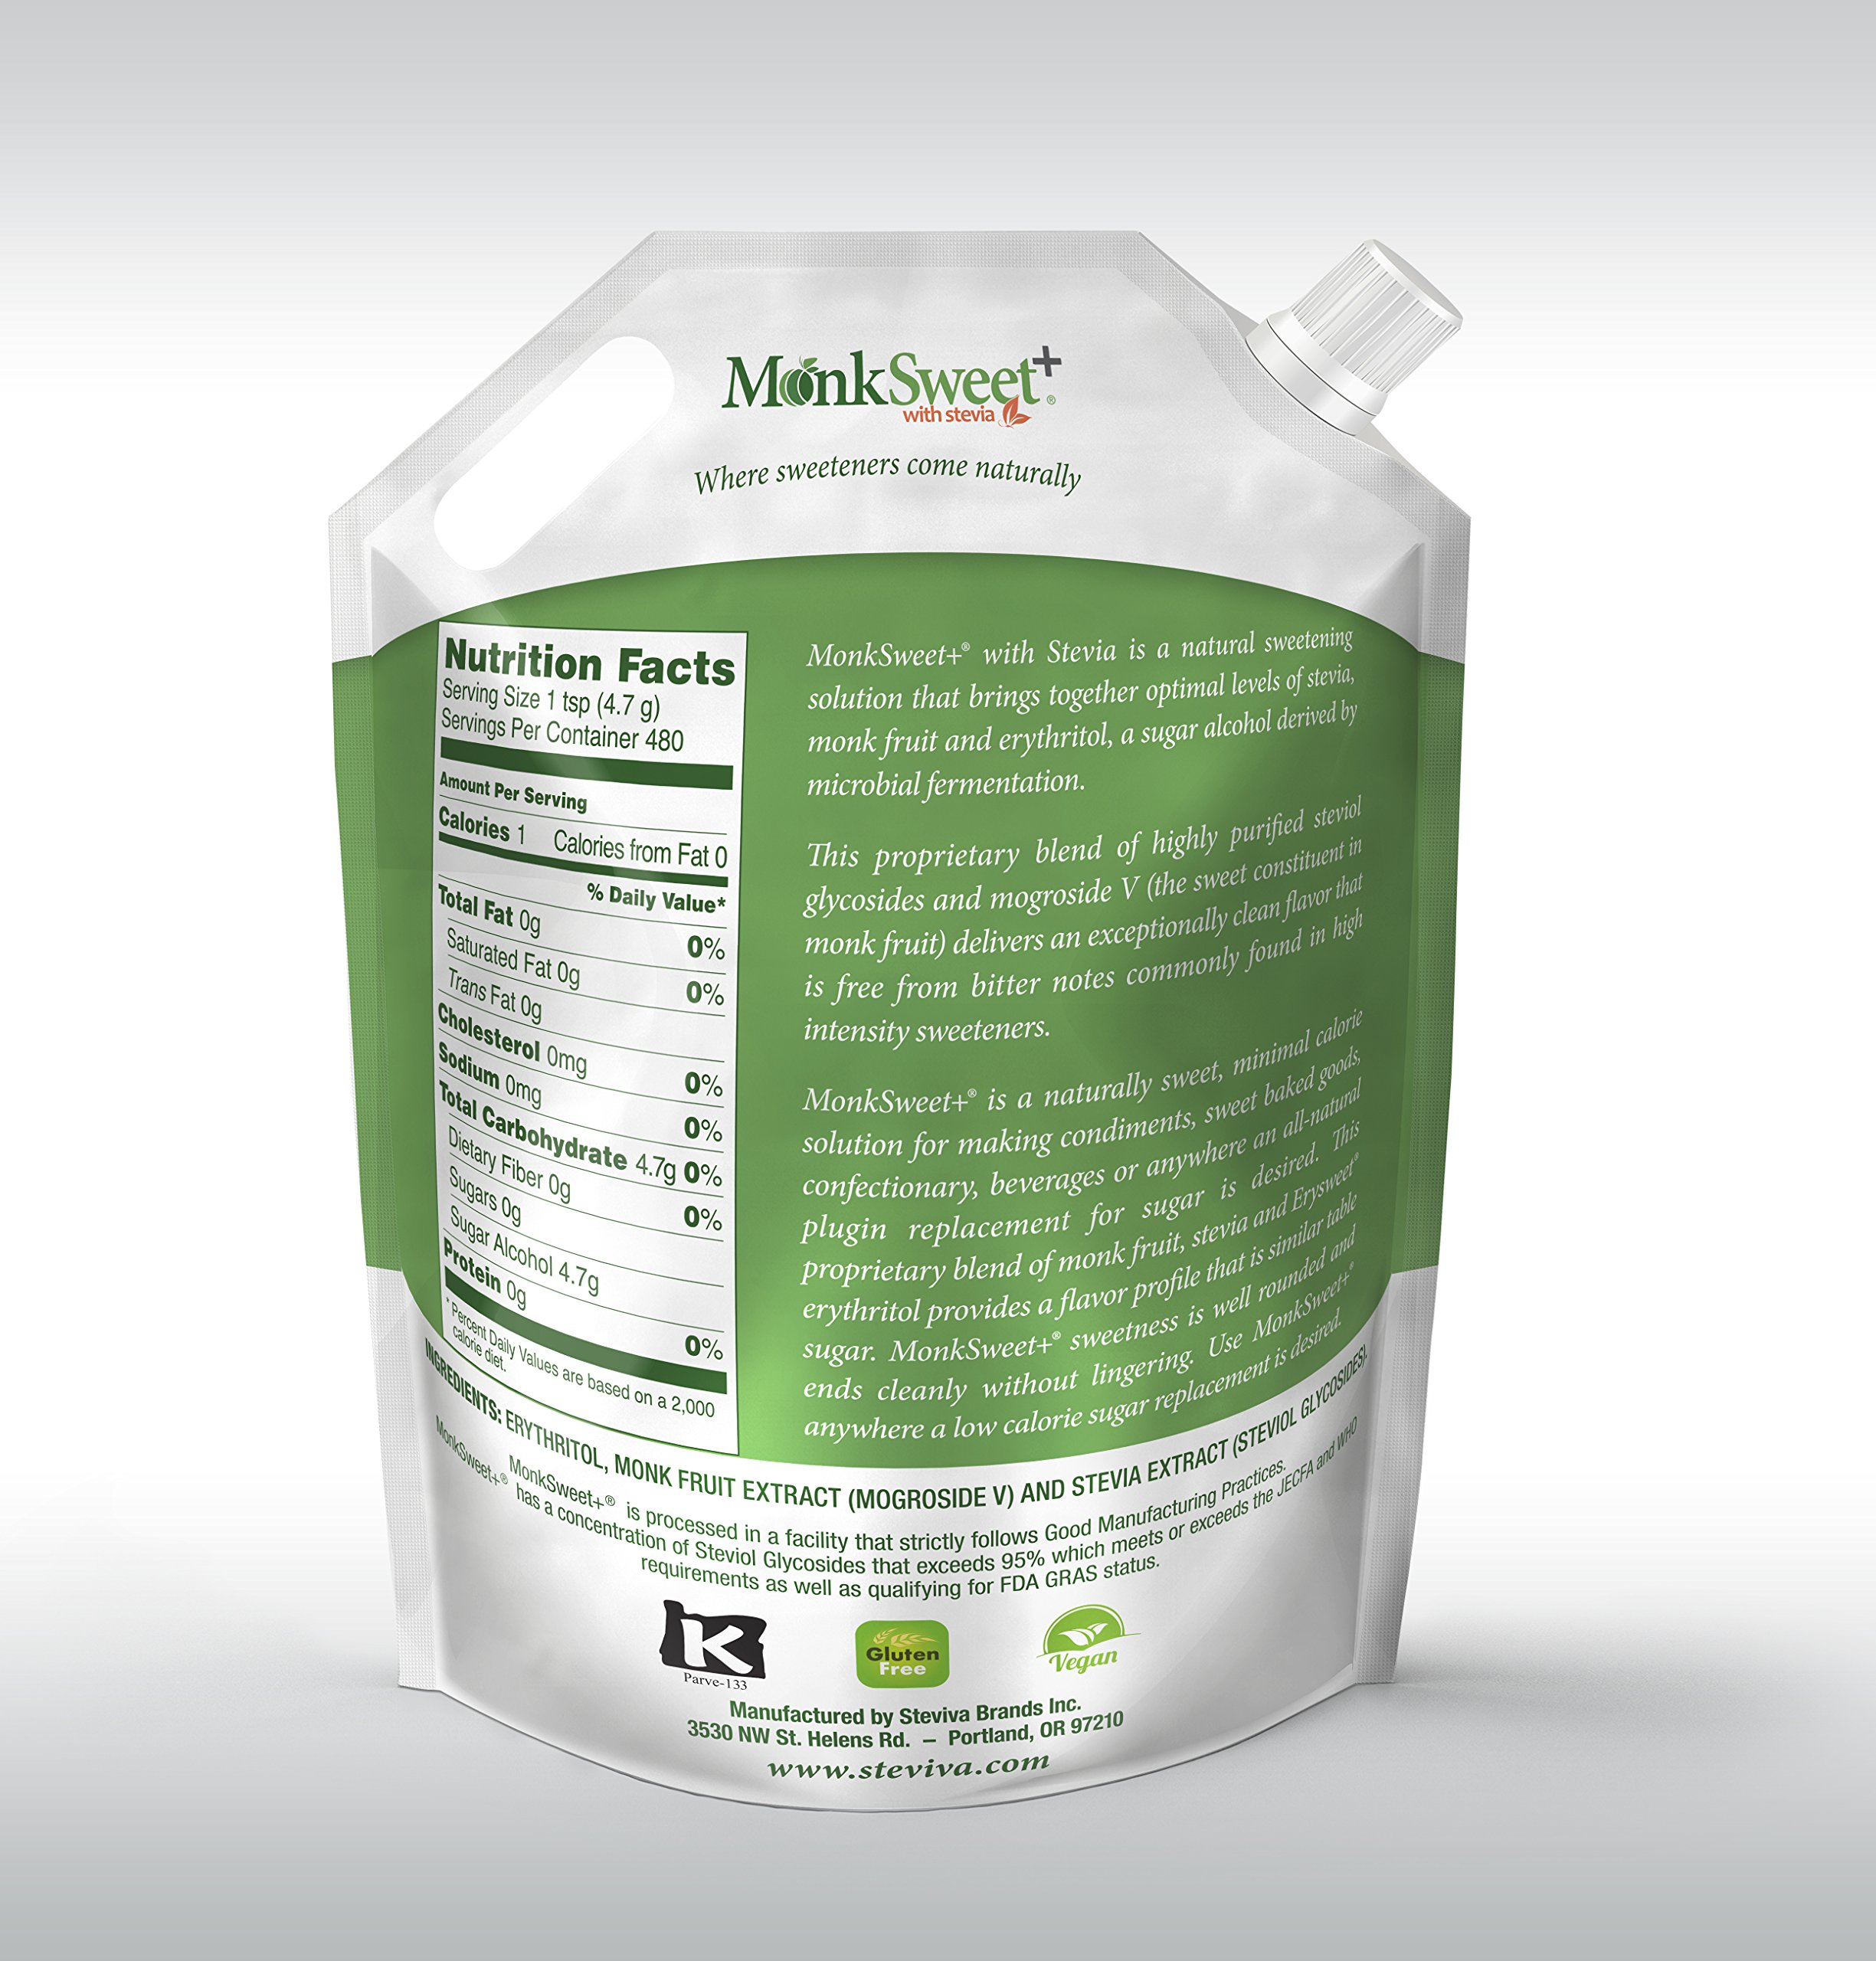 MonkSweet Plus - 5 lb bag - Monk Fruit, Stevia & Erythritol Blend NonGMO Low Carb Sweetener